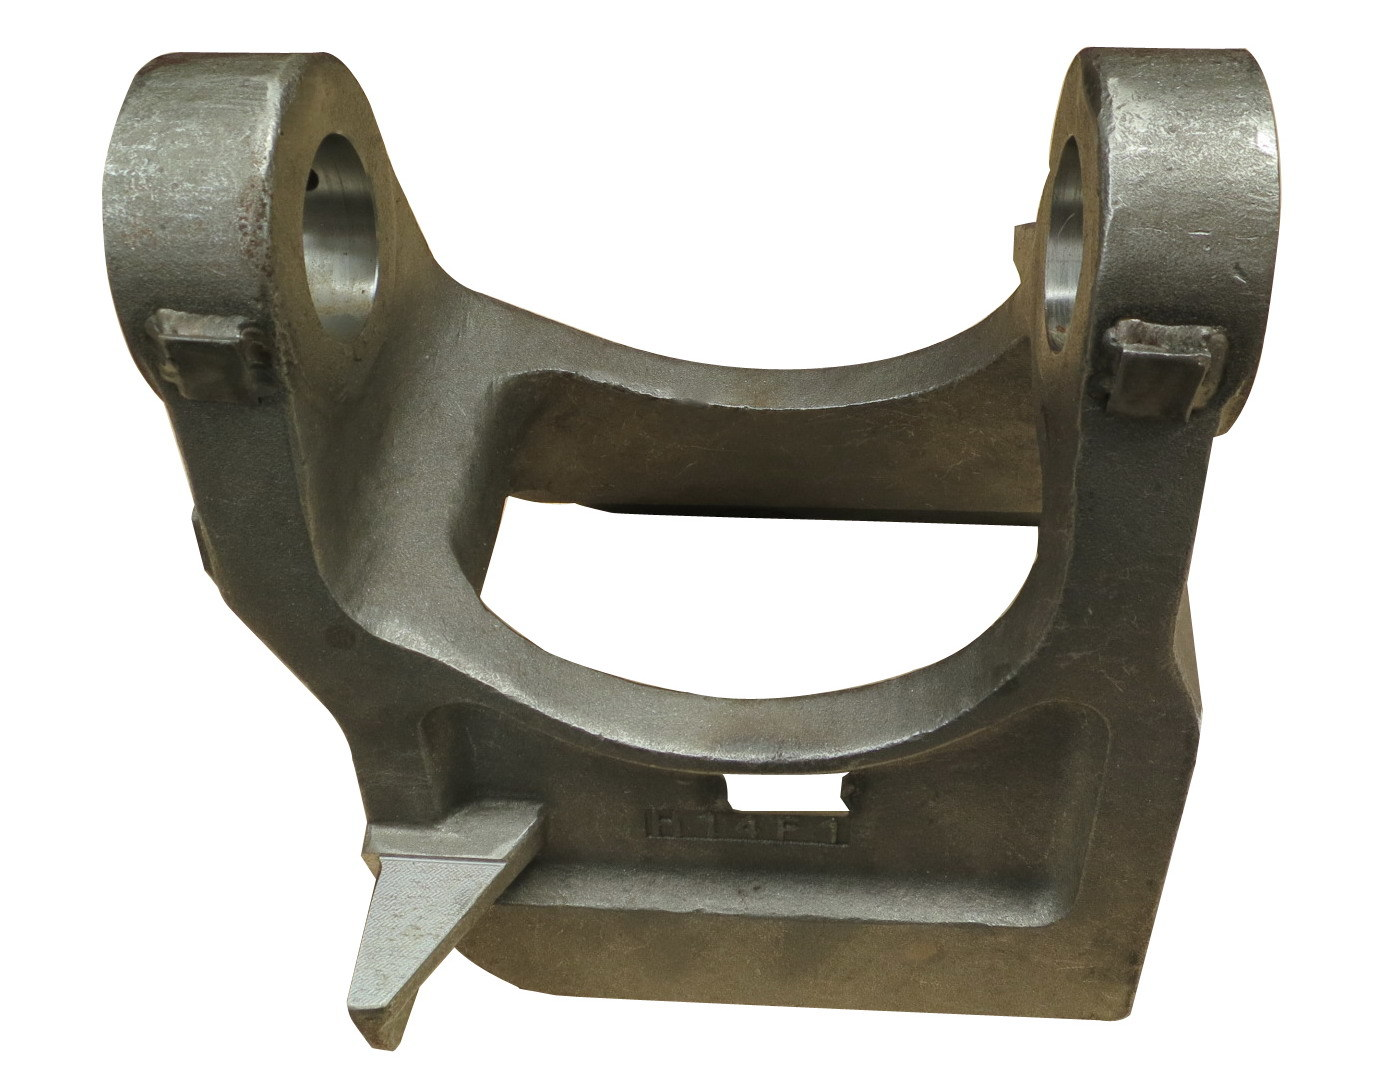 Cast Steel /Precision Investment Casting Steel/Casting Carbon (alloy) Steel